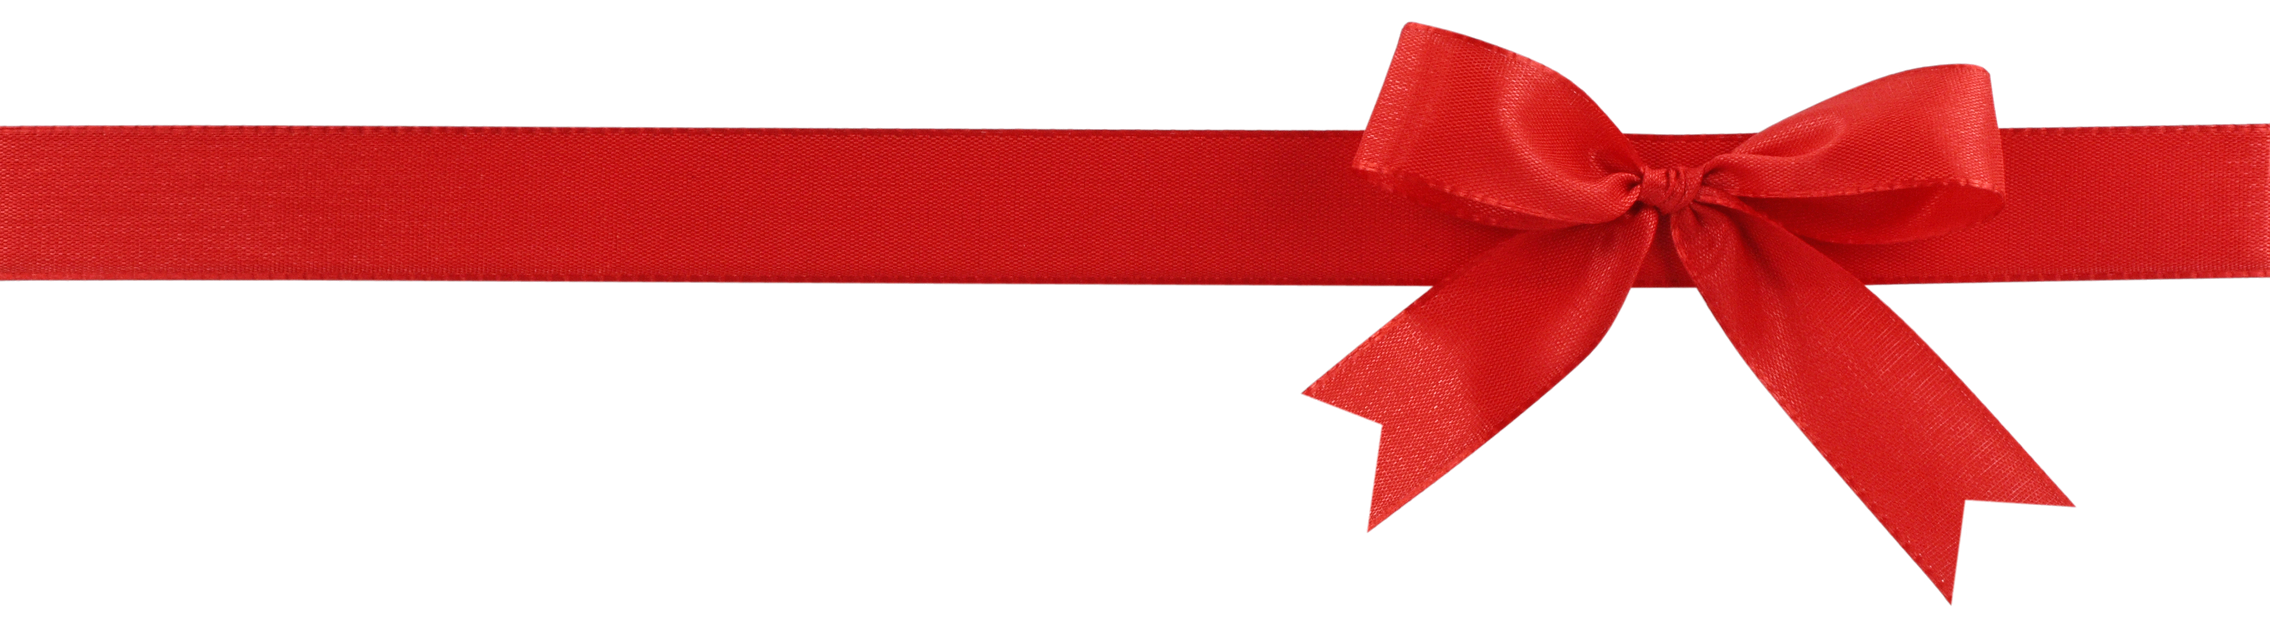 Christmas bow png. Transparent pictures free icons